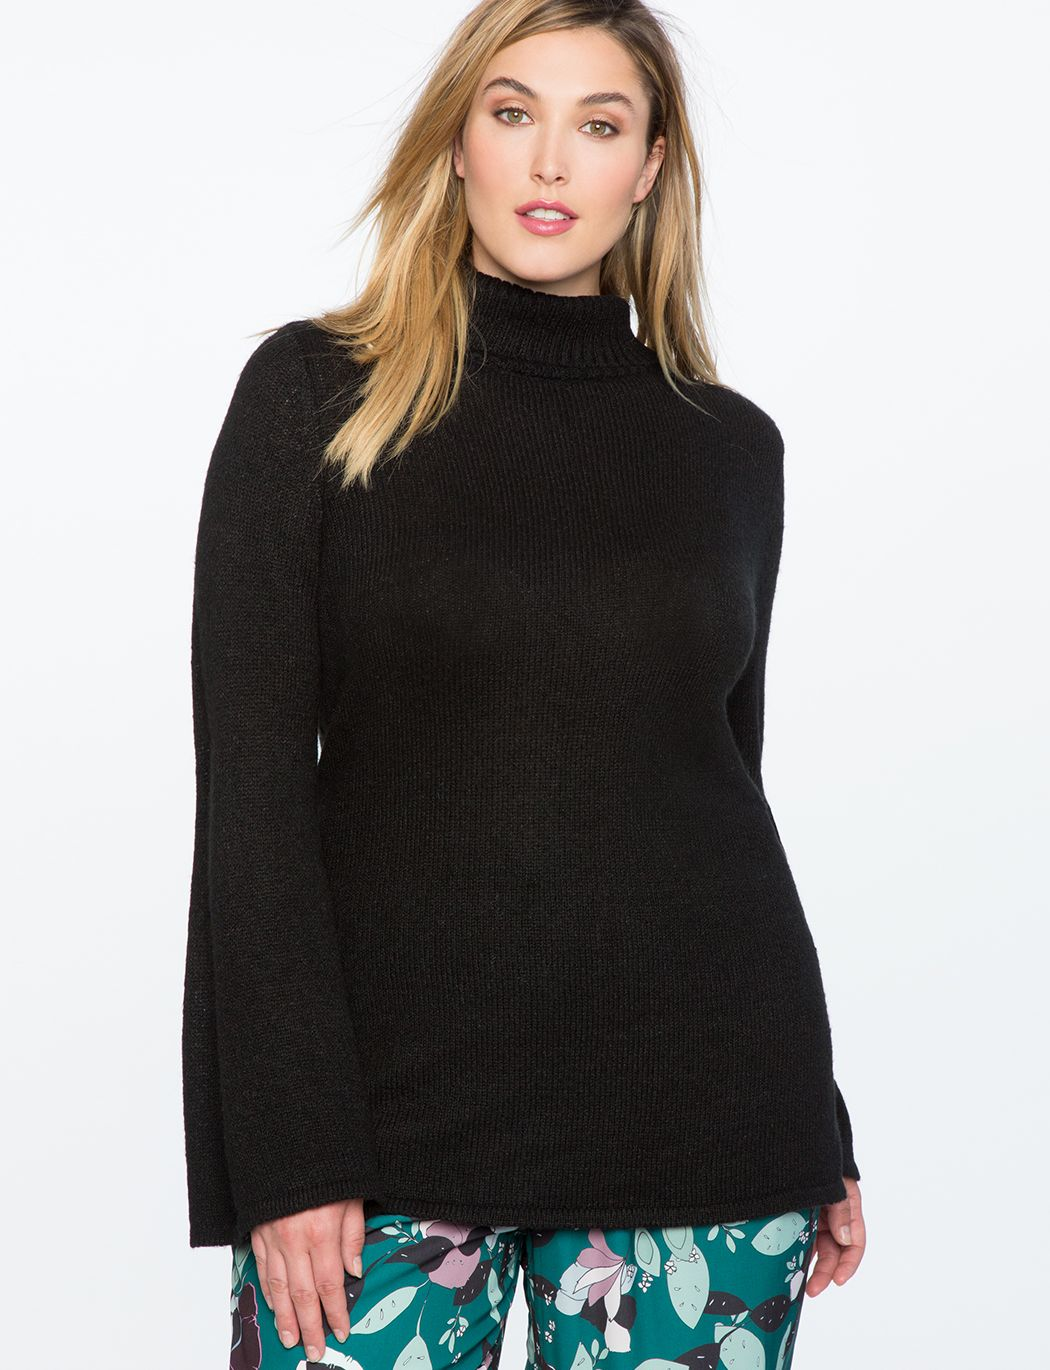 Flare Sleeve Tunic Sweater with Slits | Women's Plus Size Tops ...